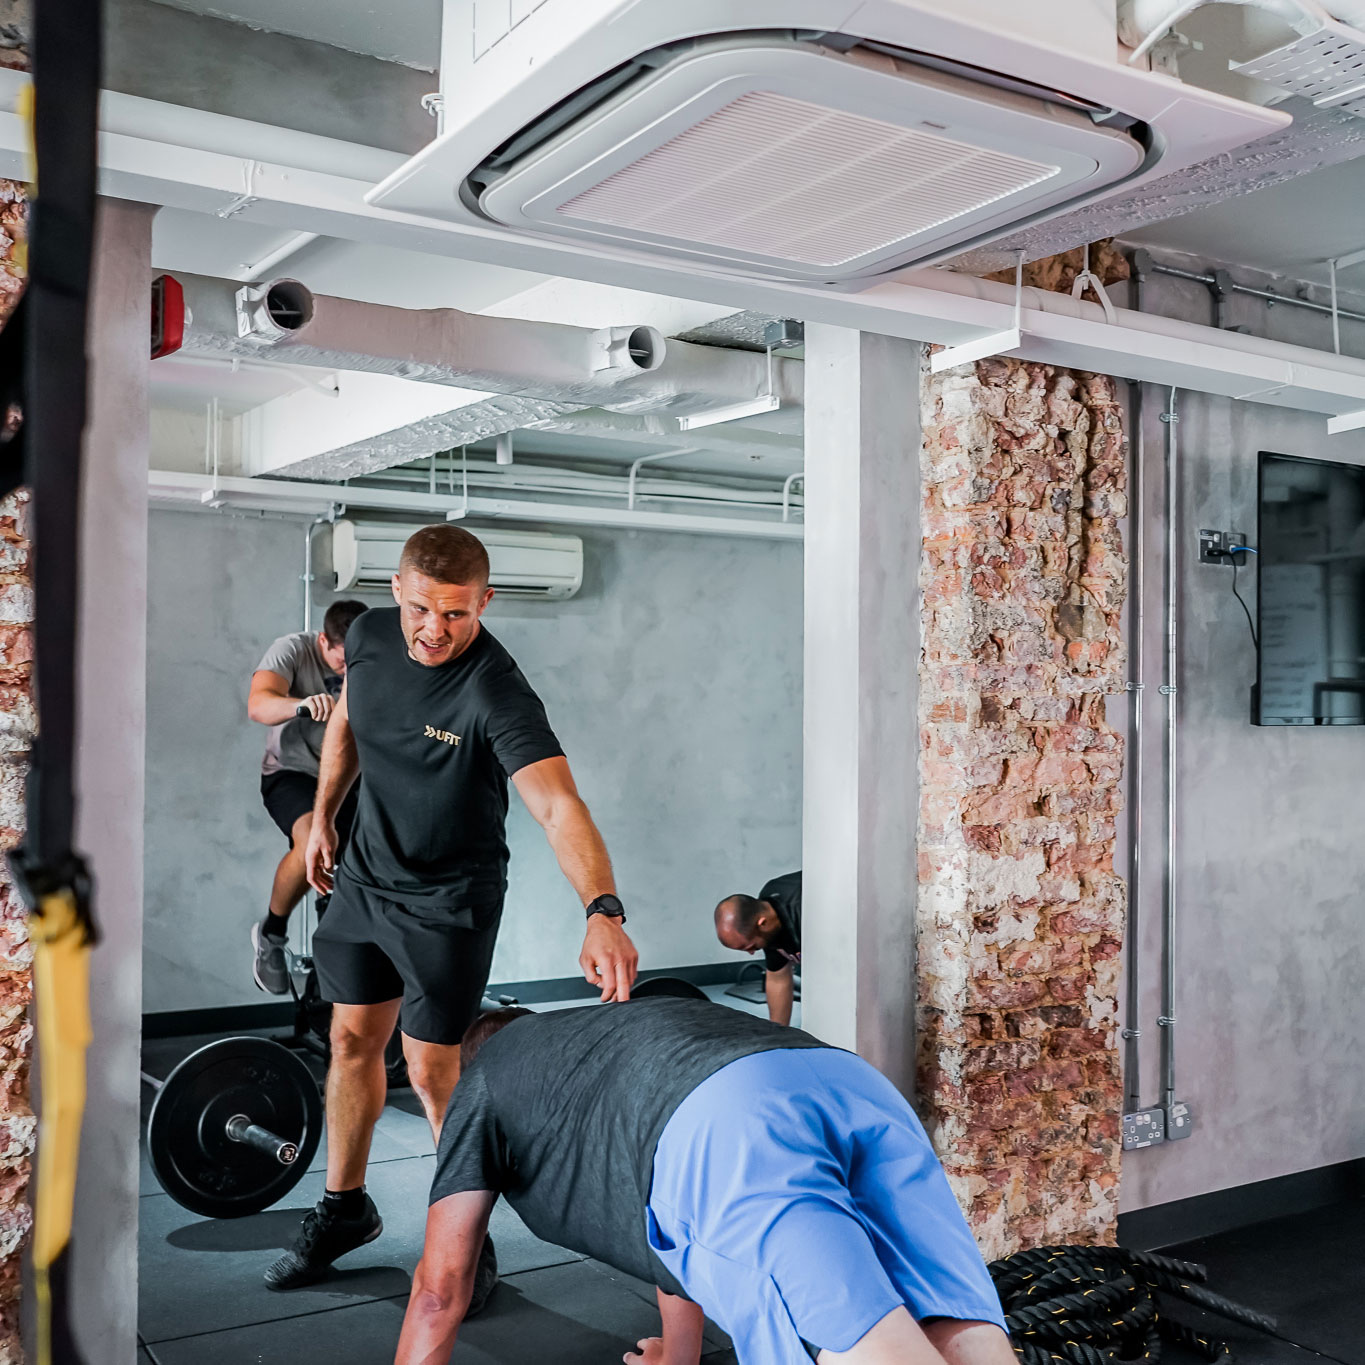 personal trainer guiding client on exercise